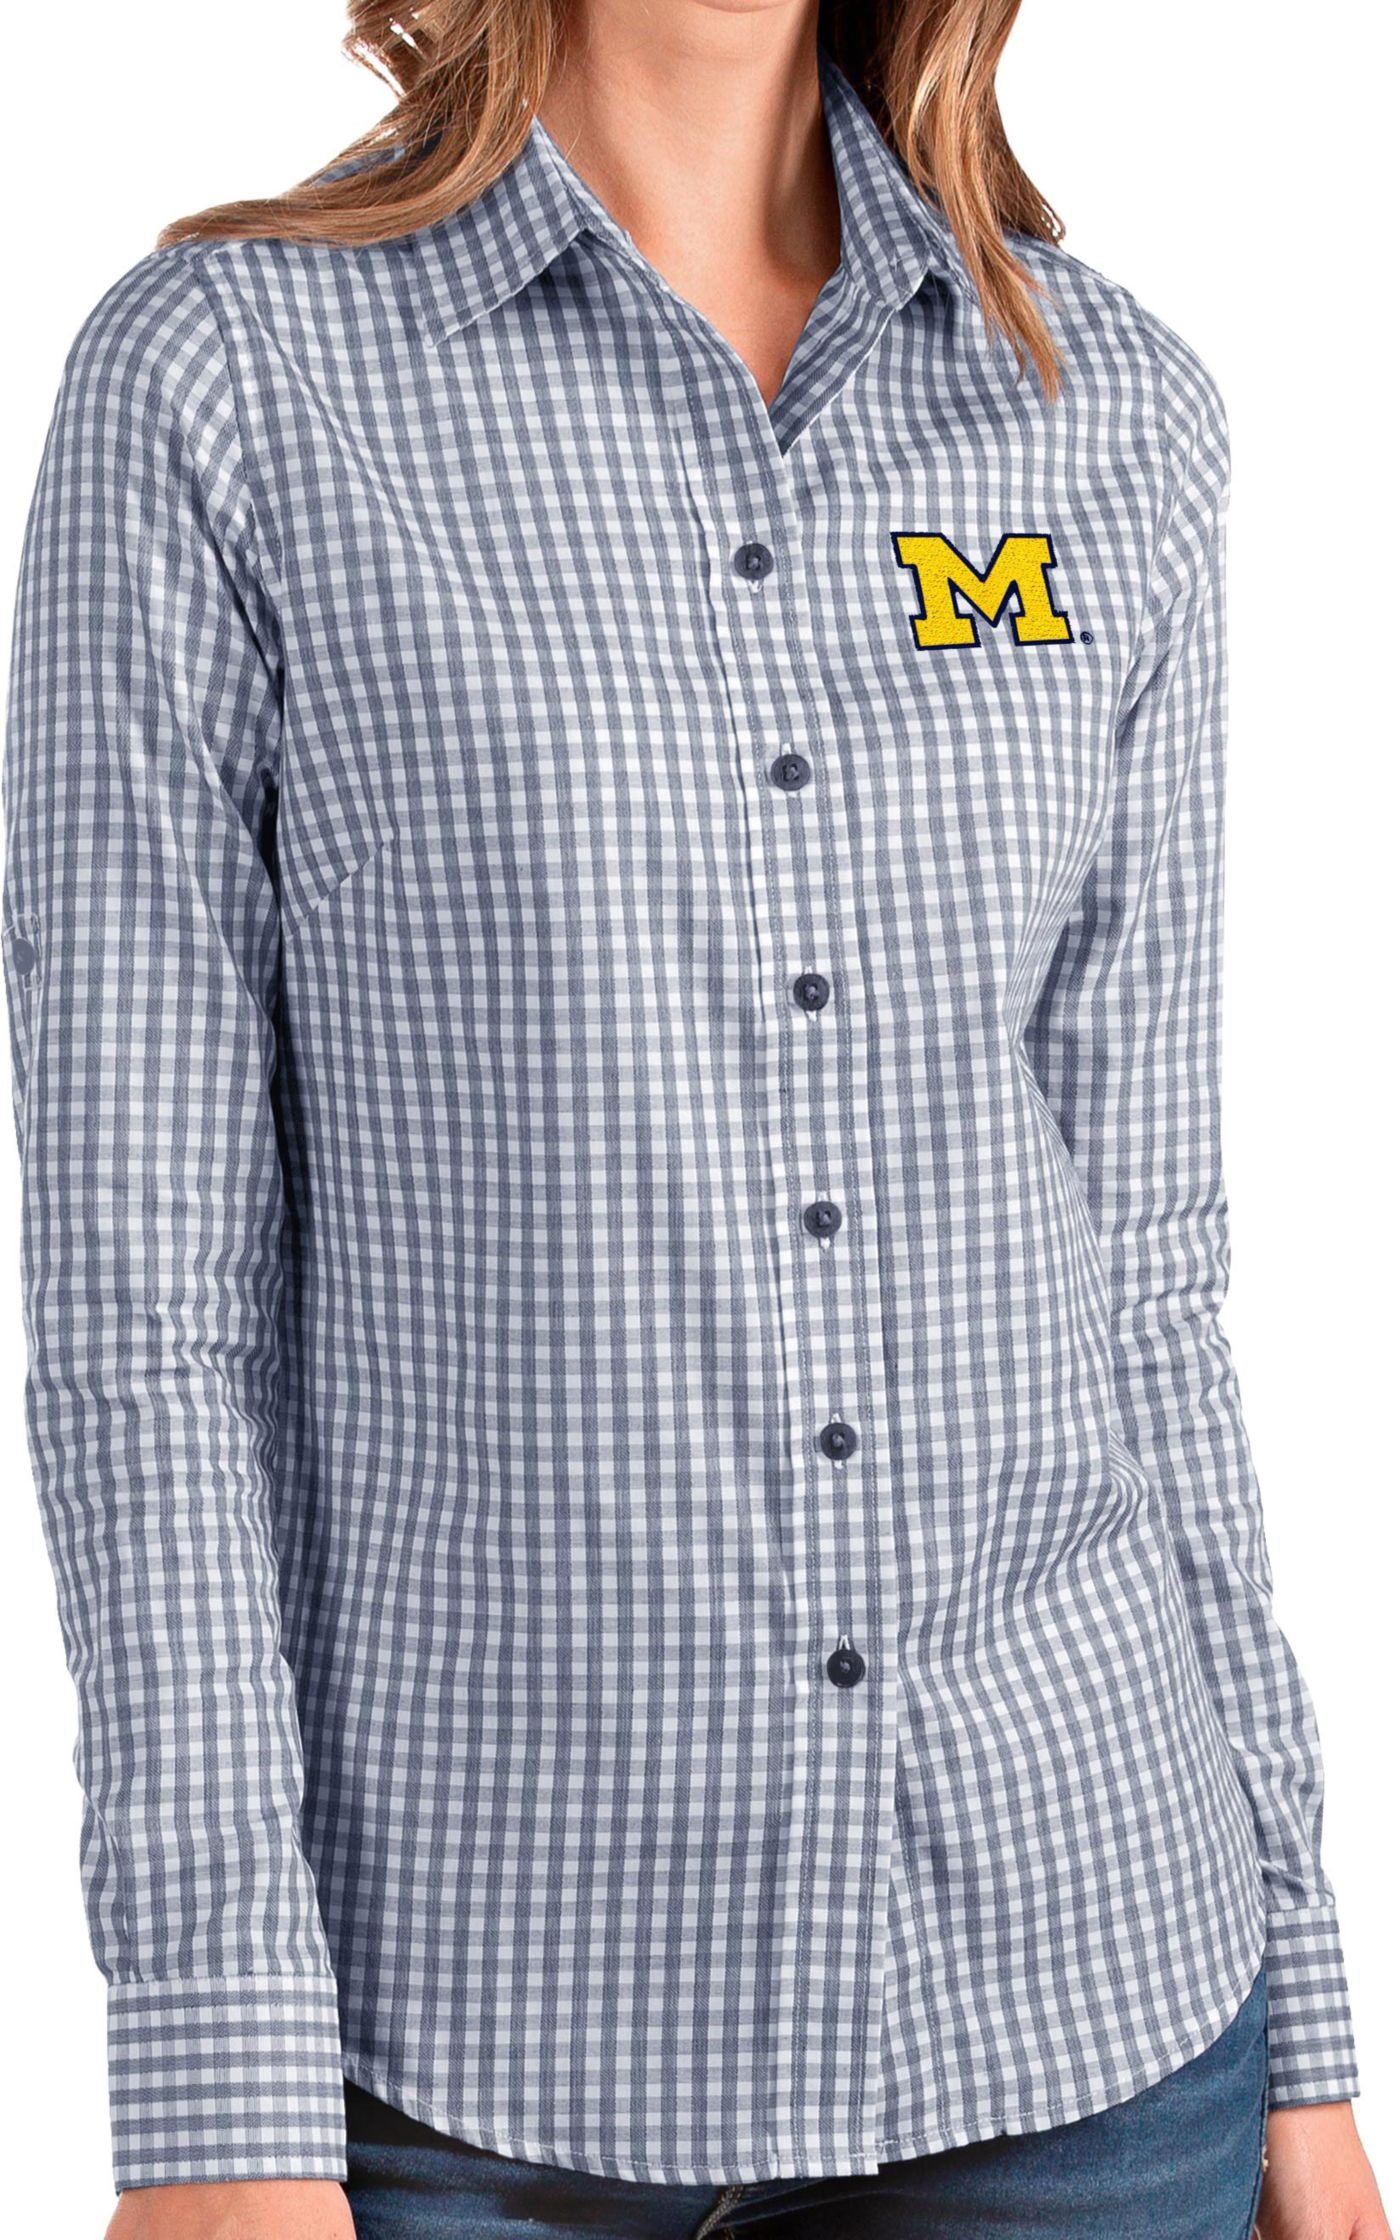 Antigua Women's Michigan Wolverines Blue Structure Button Down Long Sleeve Shirt